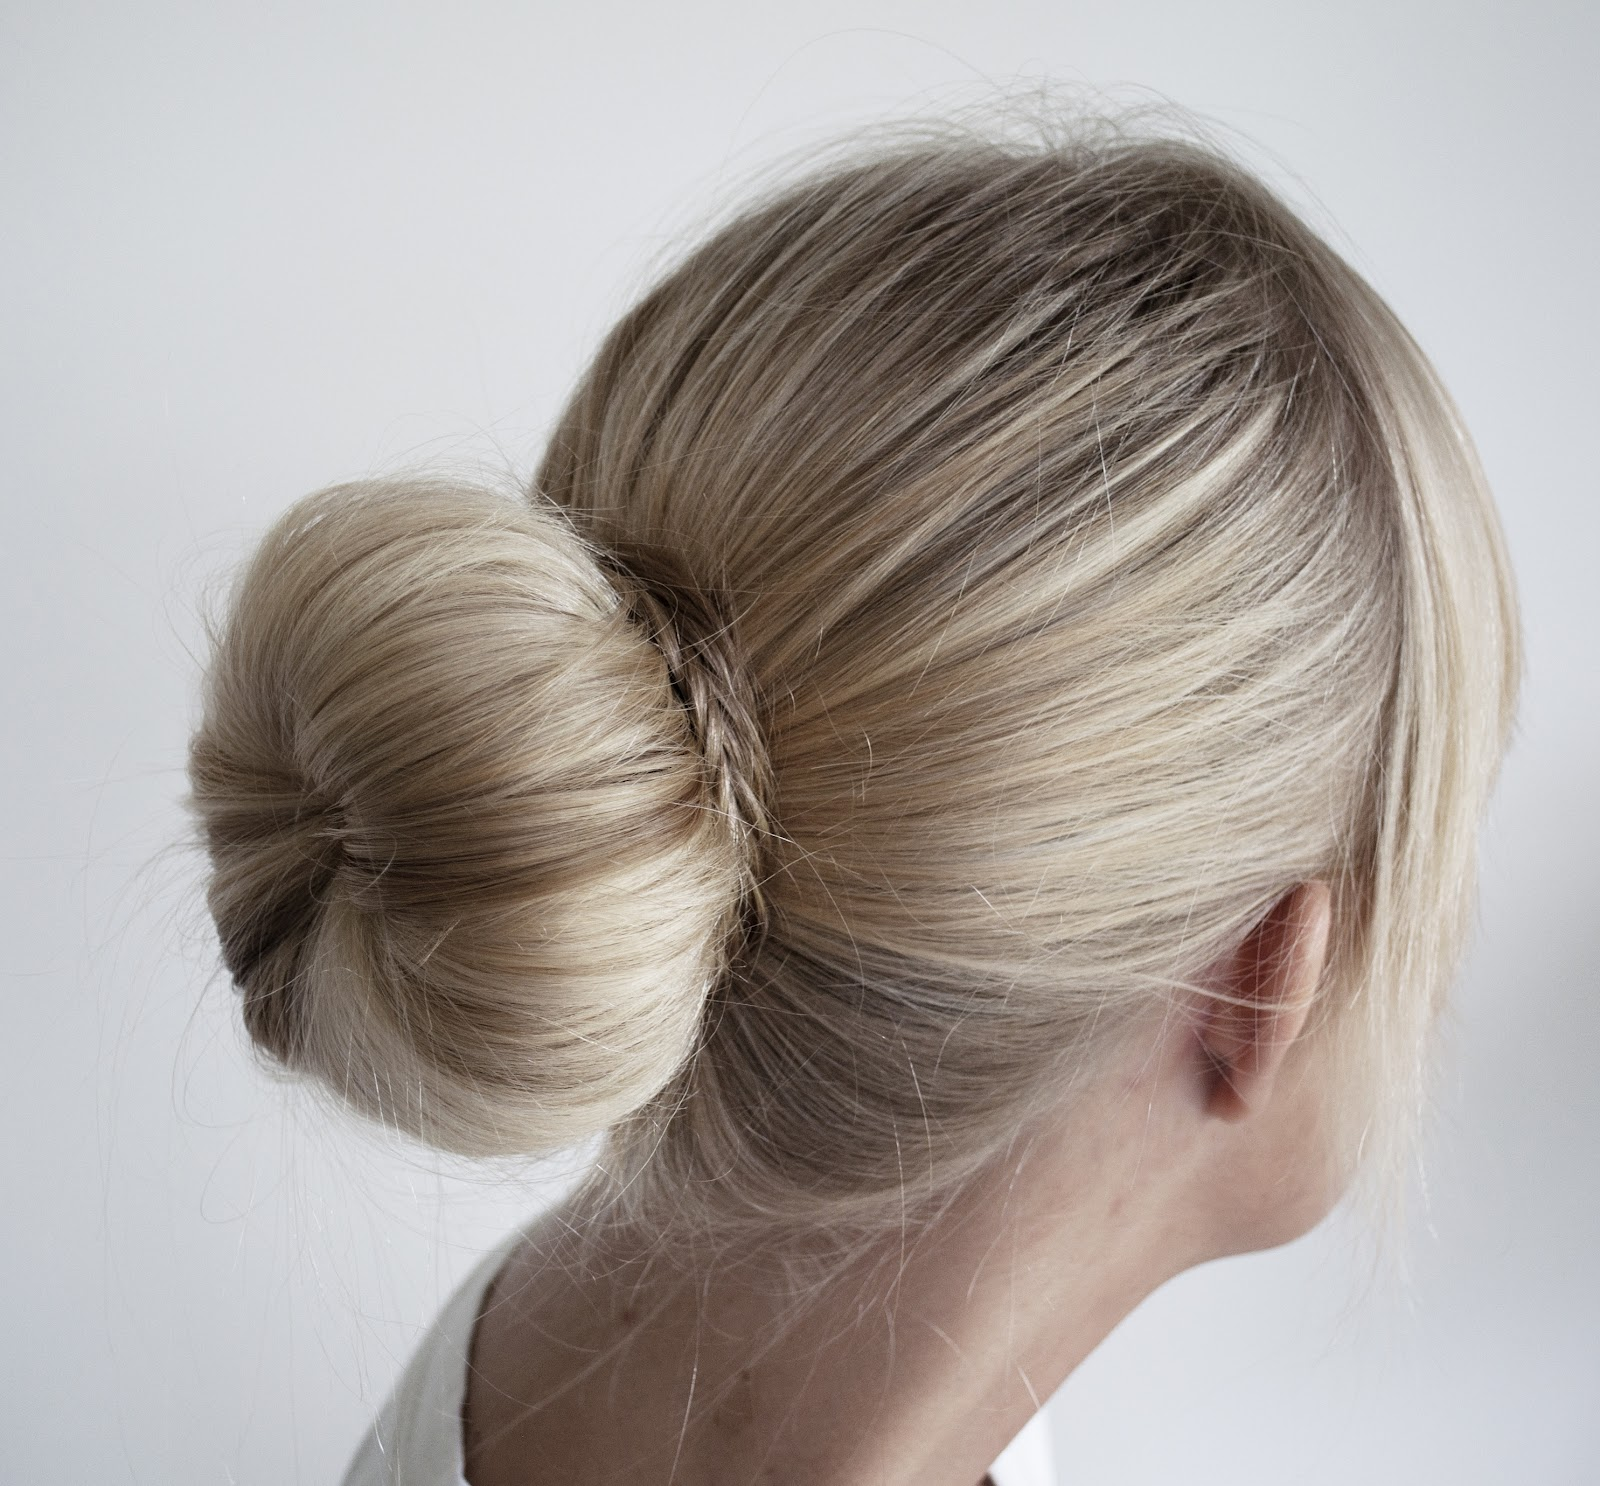 Instead of adding big, loose curls to your medium-length or long tresses, upgrade your party look with a big bun hairstyle instead. With a little effort and a soft doughnut ring, you can transform a ponytail into the chicest chignon at the nape or a voluminous ballerina bun worn on the top of your head.